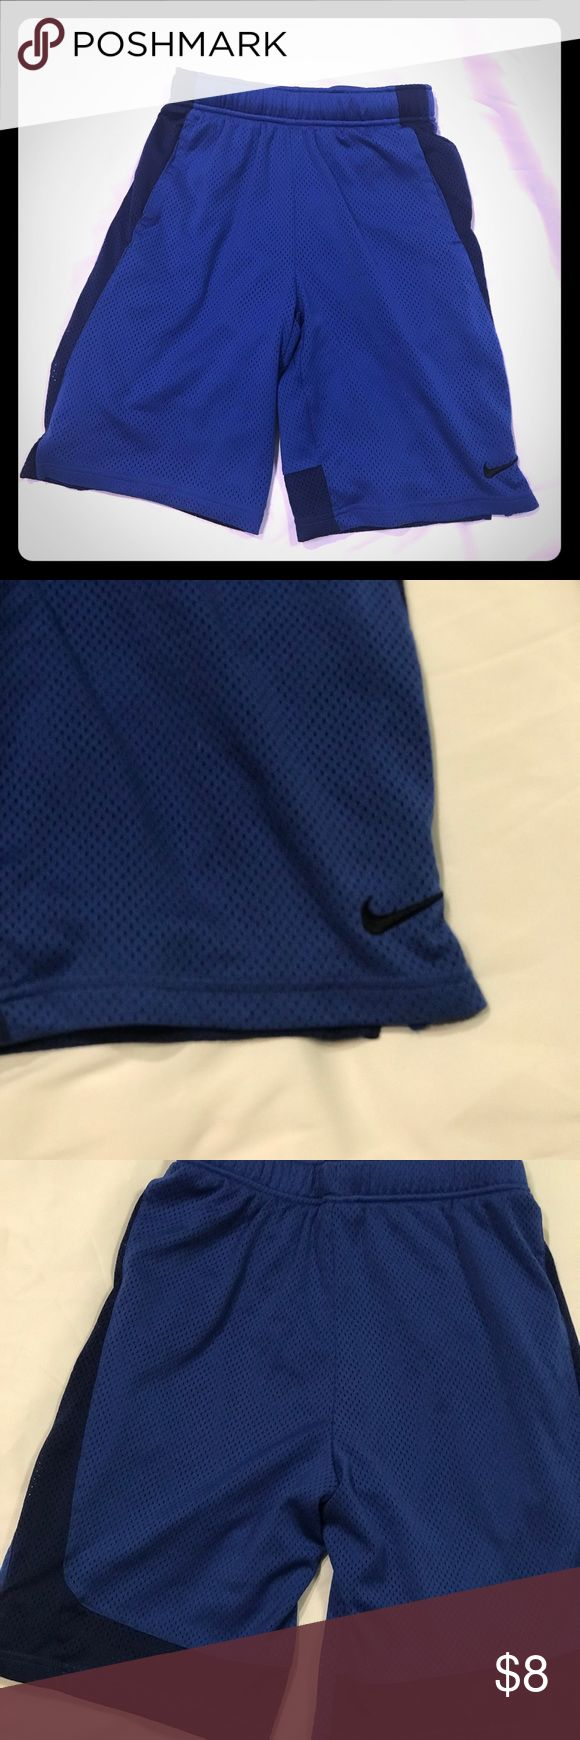 Two tone blue Boys Nike shorts Large Great condition with one very minor mini snag, pictured.   Would love to bundle for a better price! Nike Bottoms Shorts